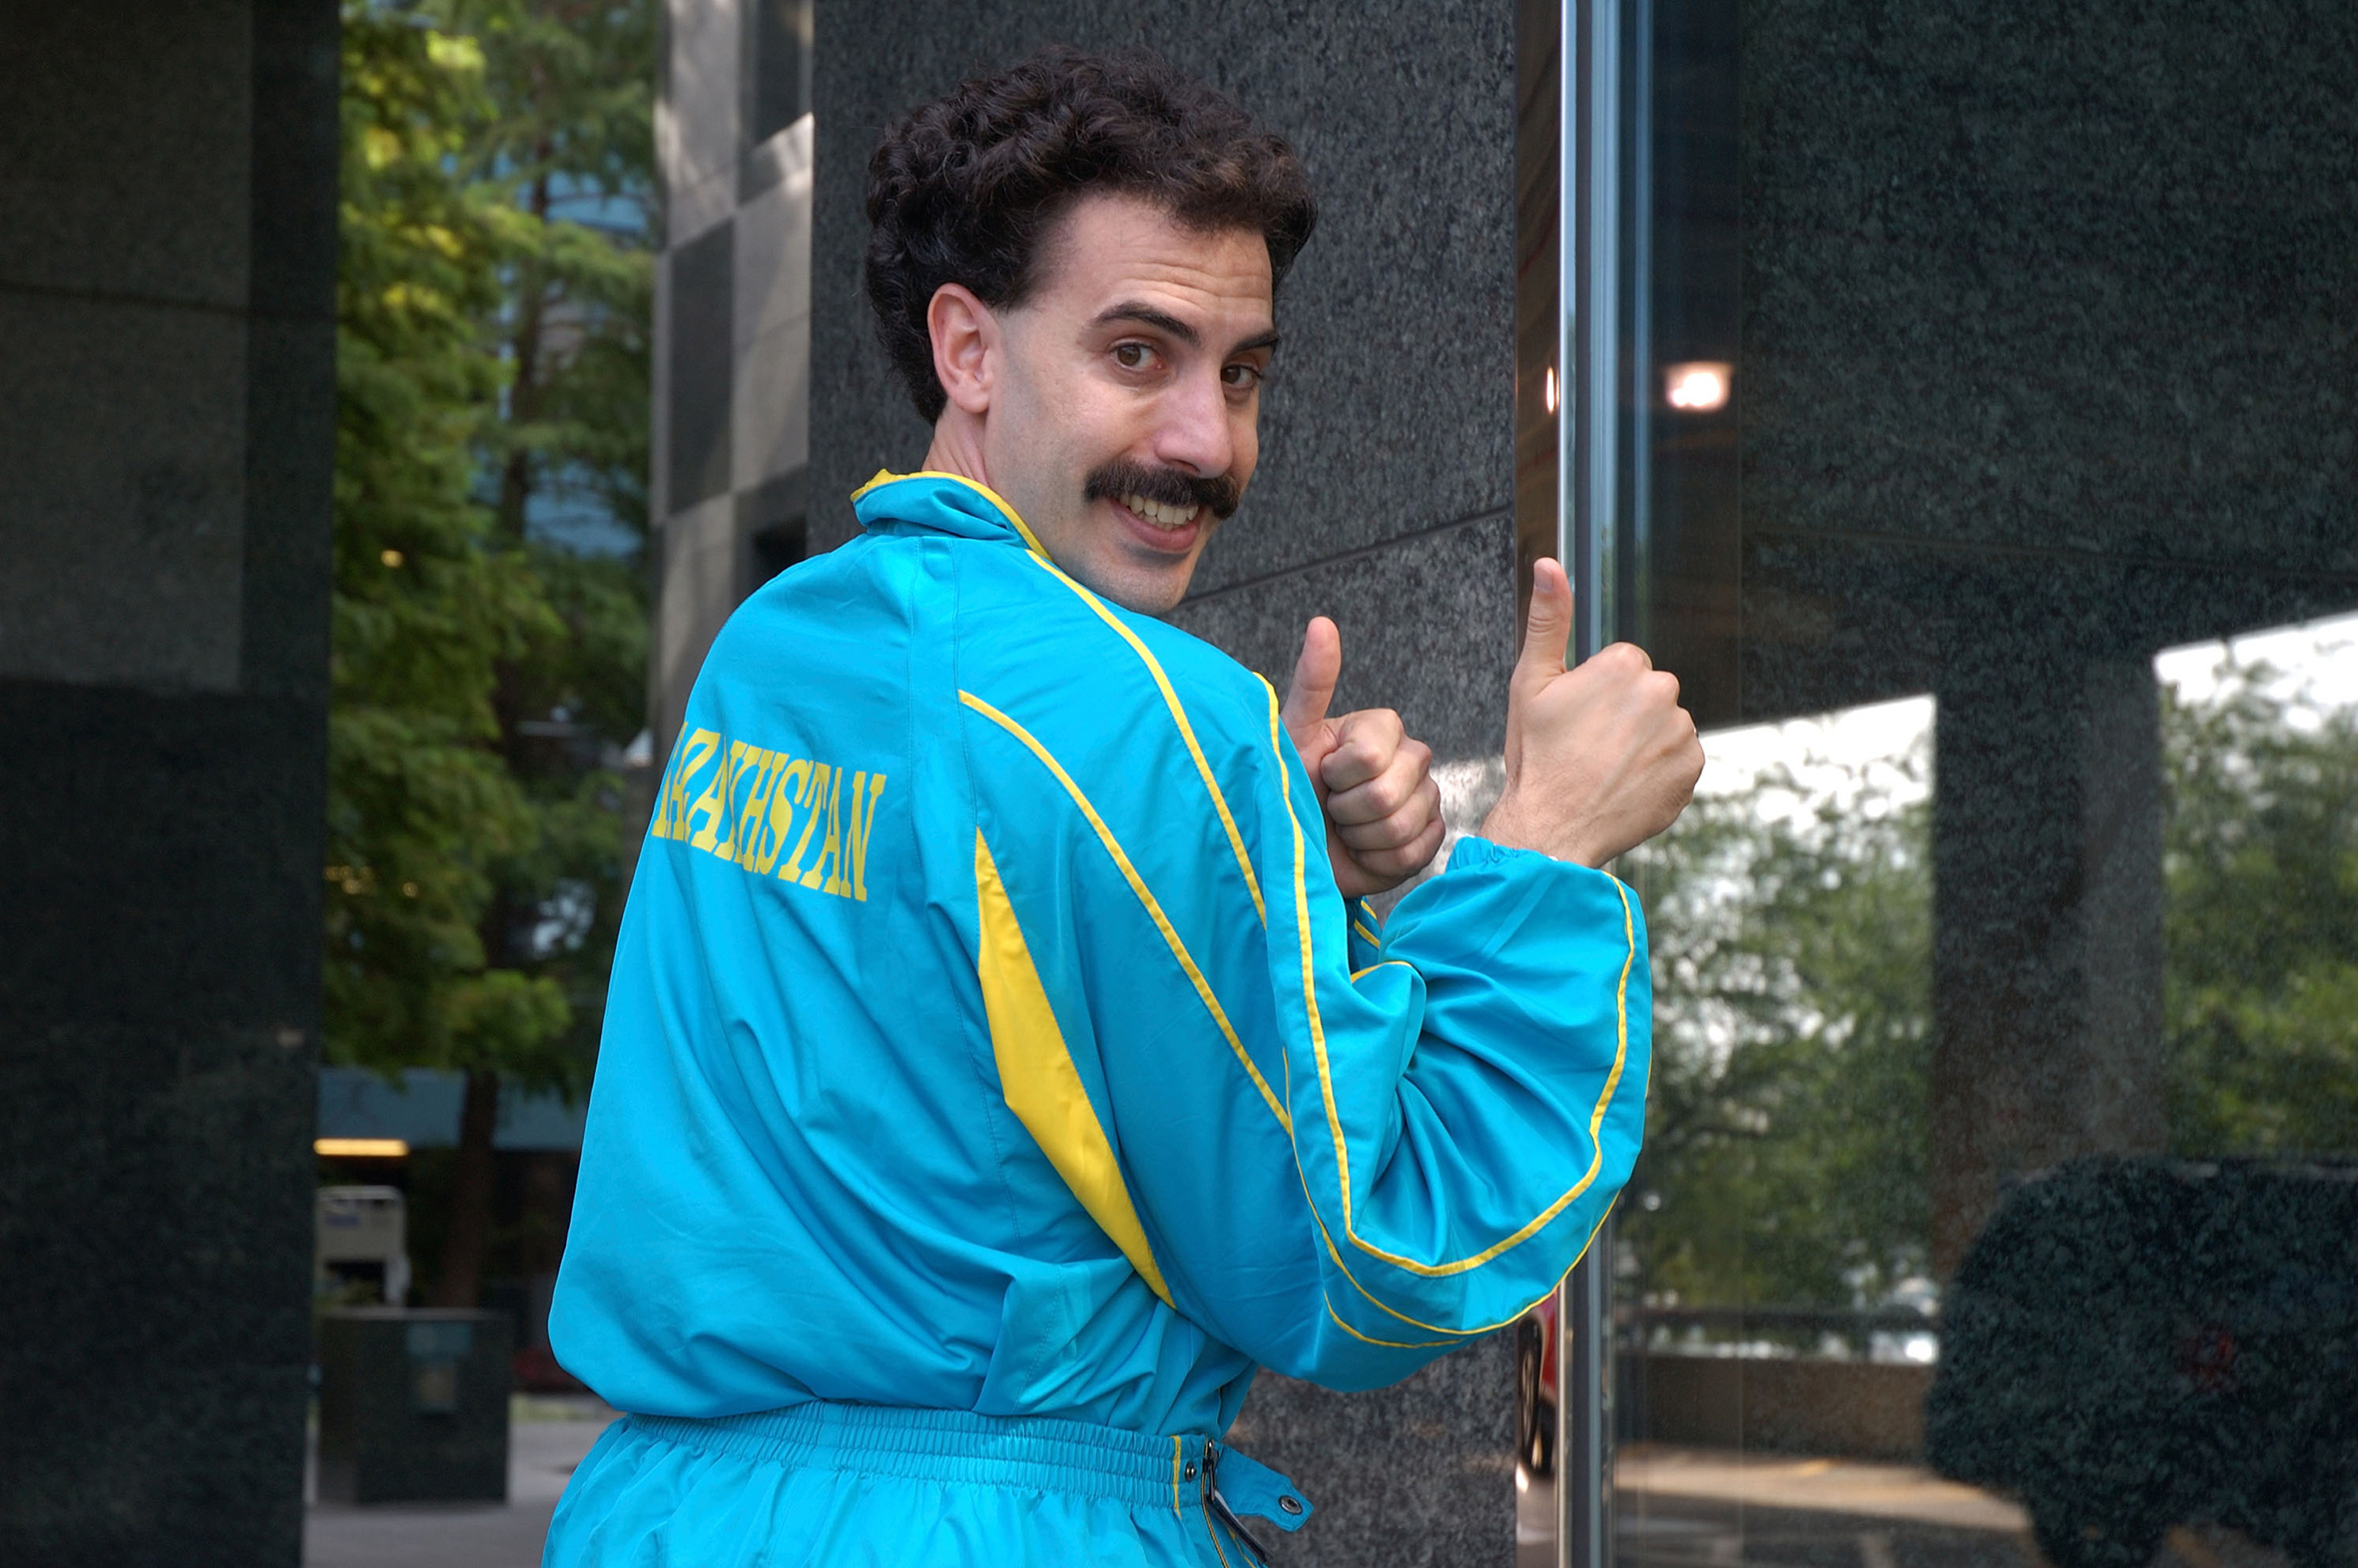 Beware: The new Borat trailer is here and you can't unsee it